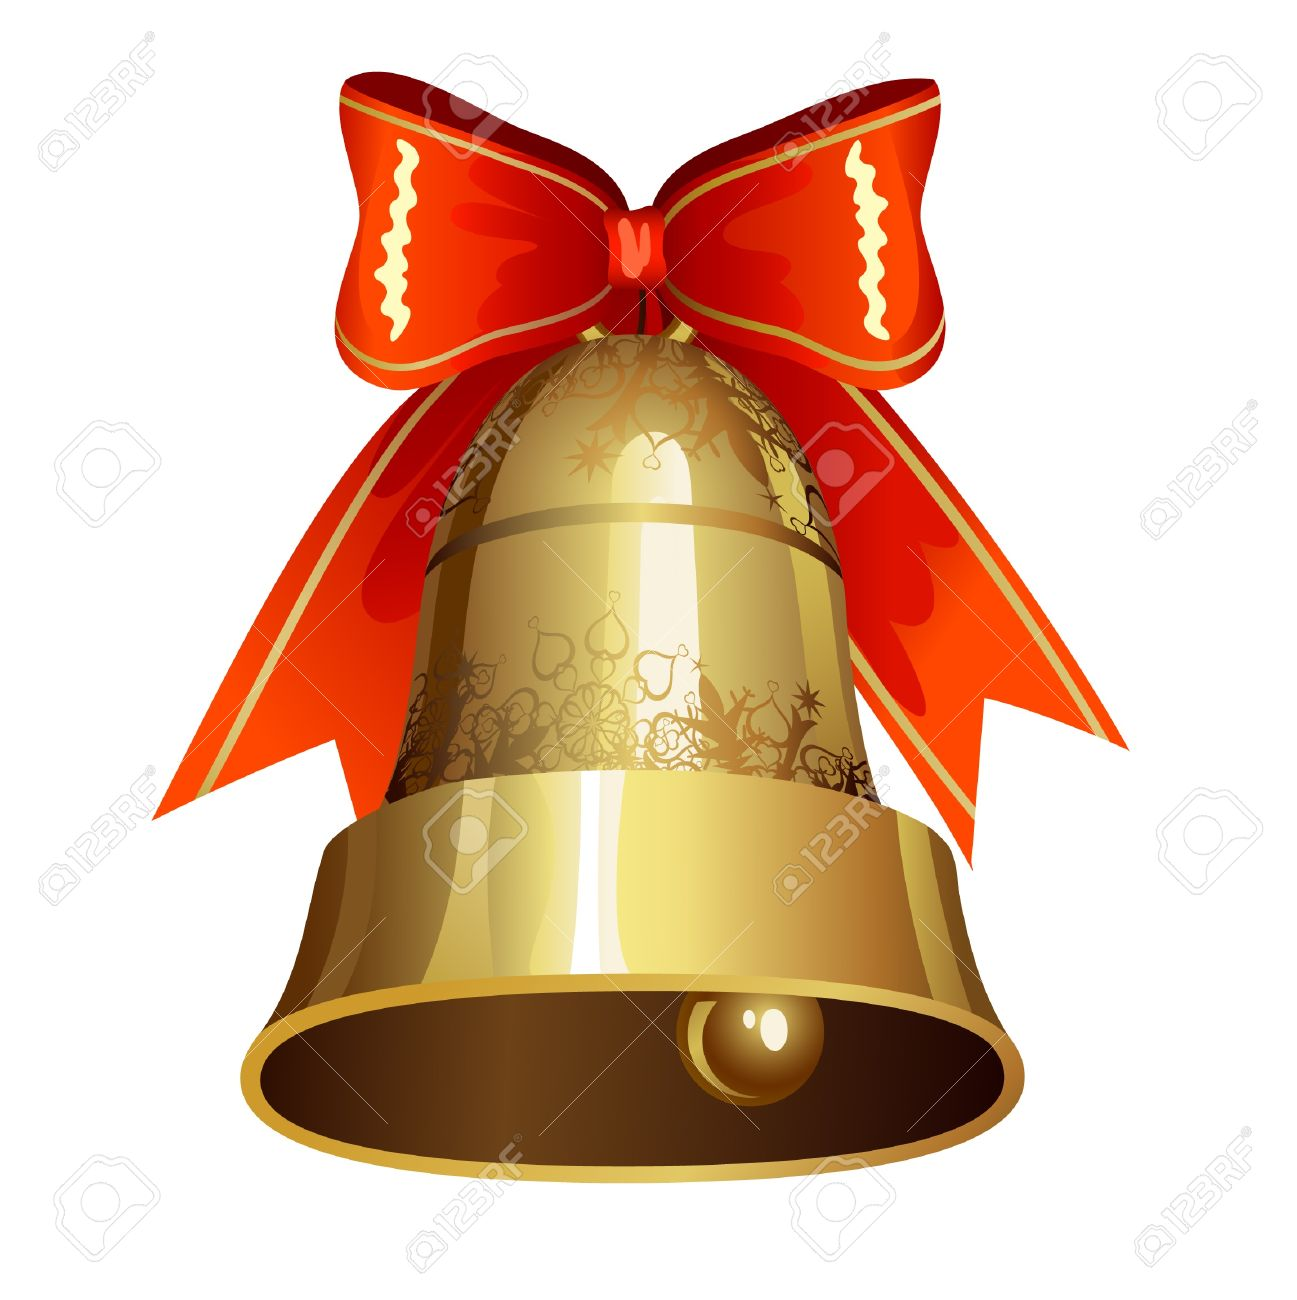 Christmas Decoration With Ringing Bell Royalty Free Cliparts ...